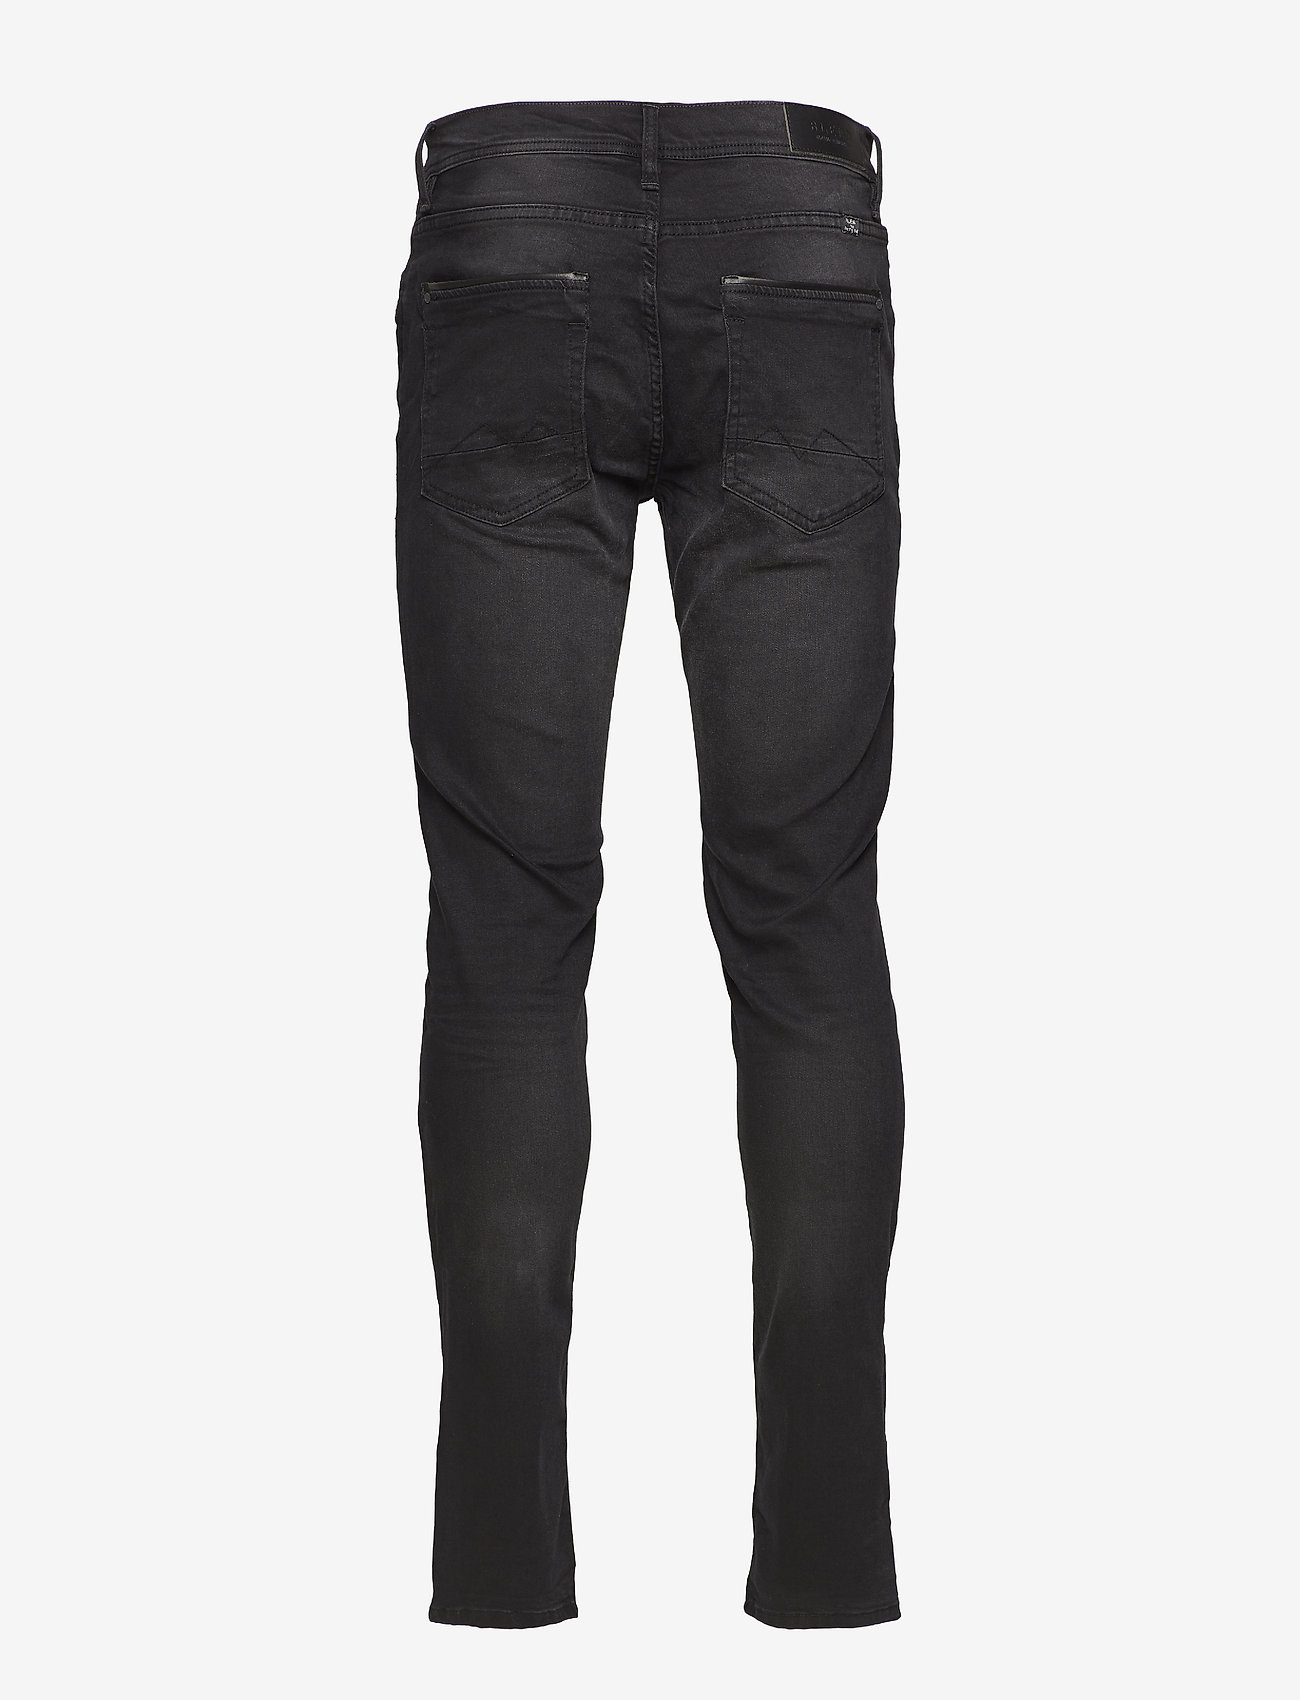 Blend - Jet fit - NOOS Jeans - slim jeans - denim black - 1